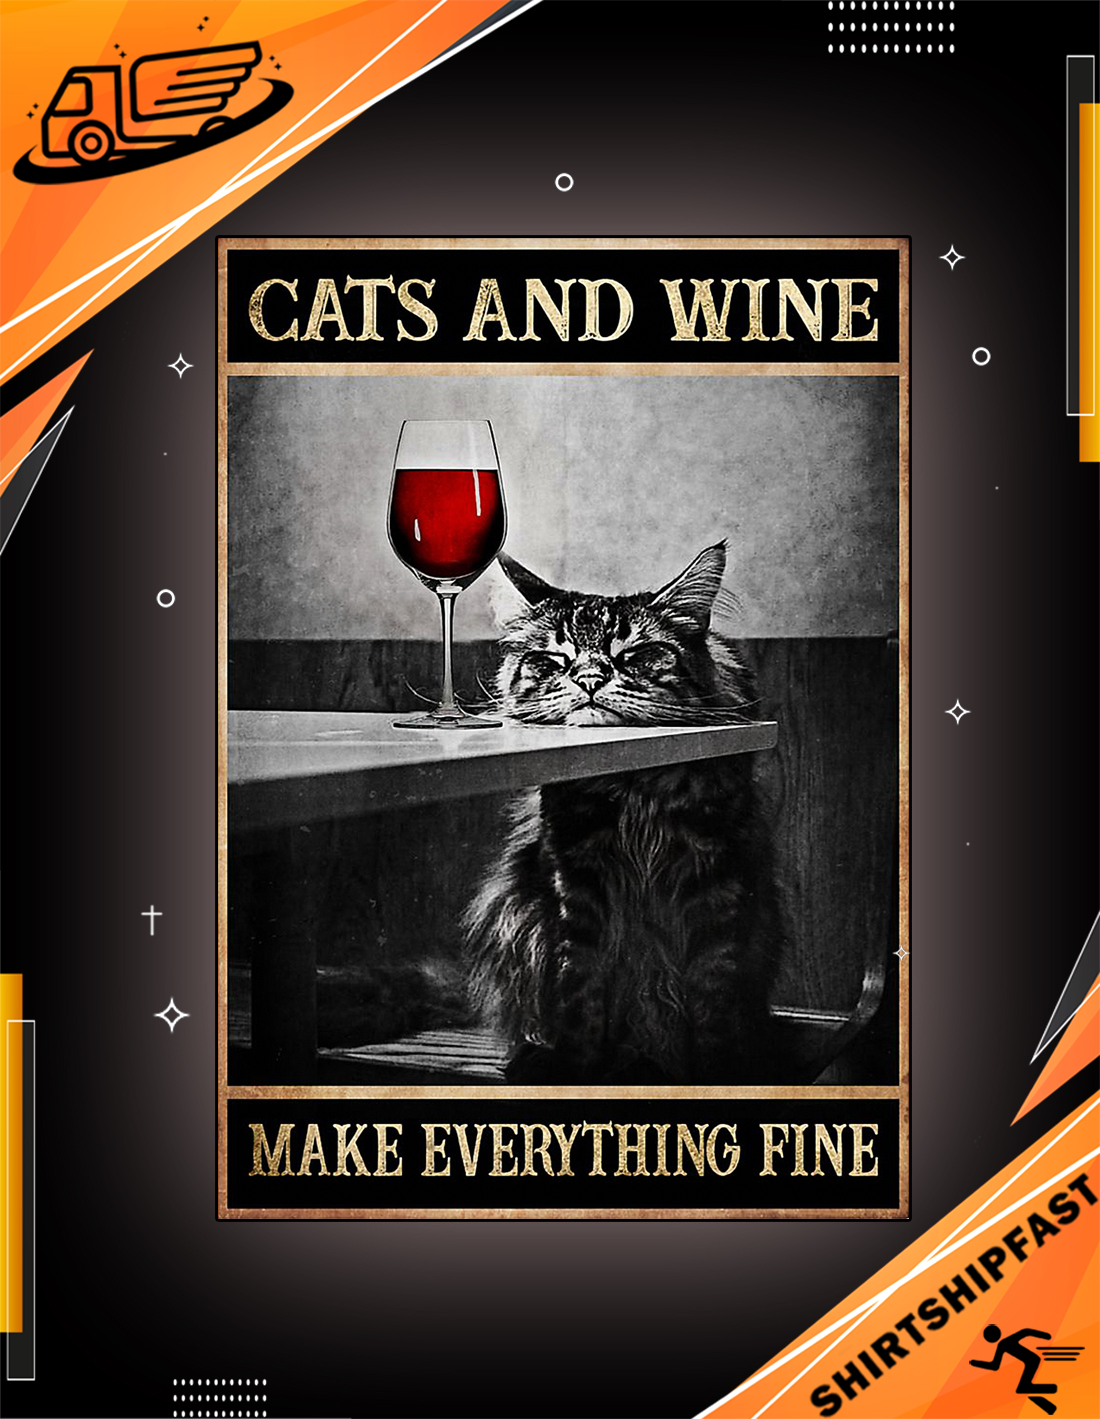 Cats and wine make everything fine poster - Picture 2